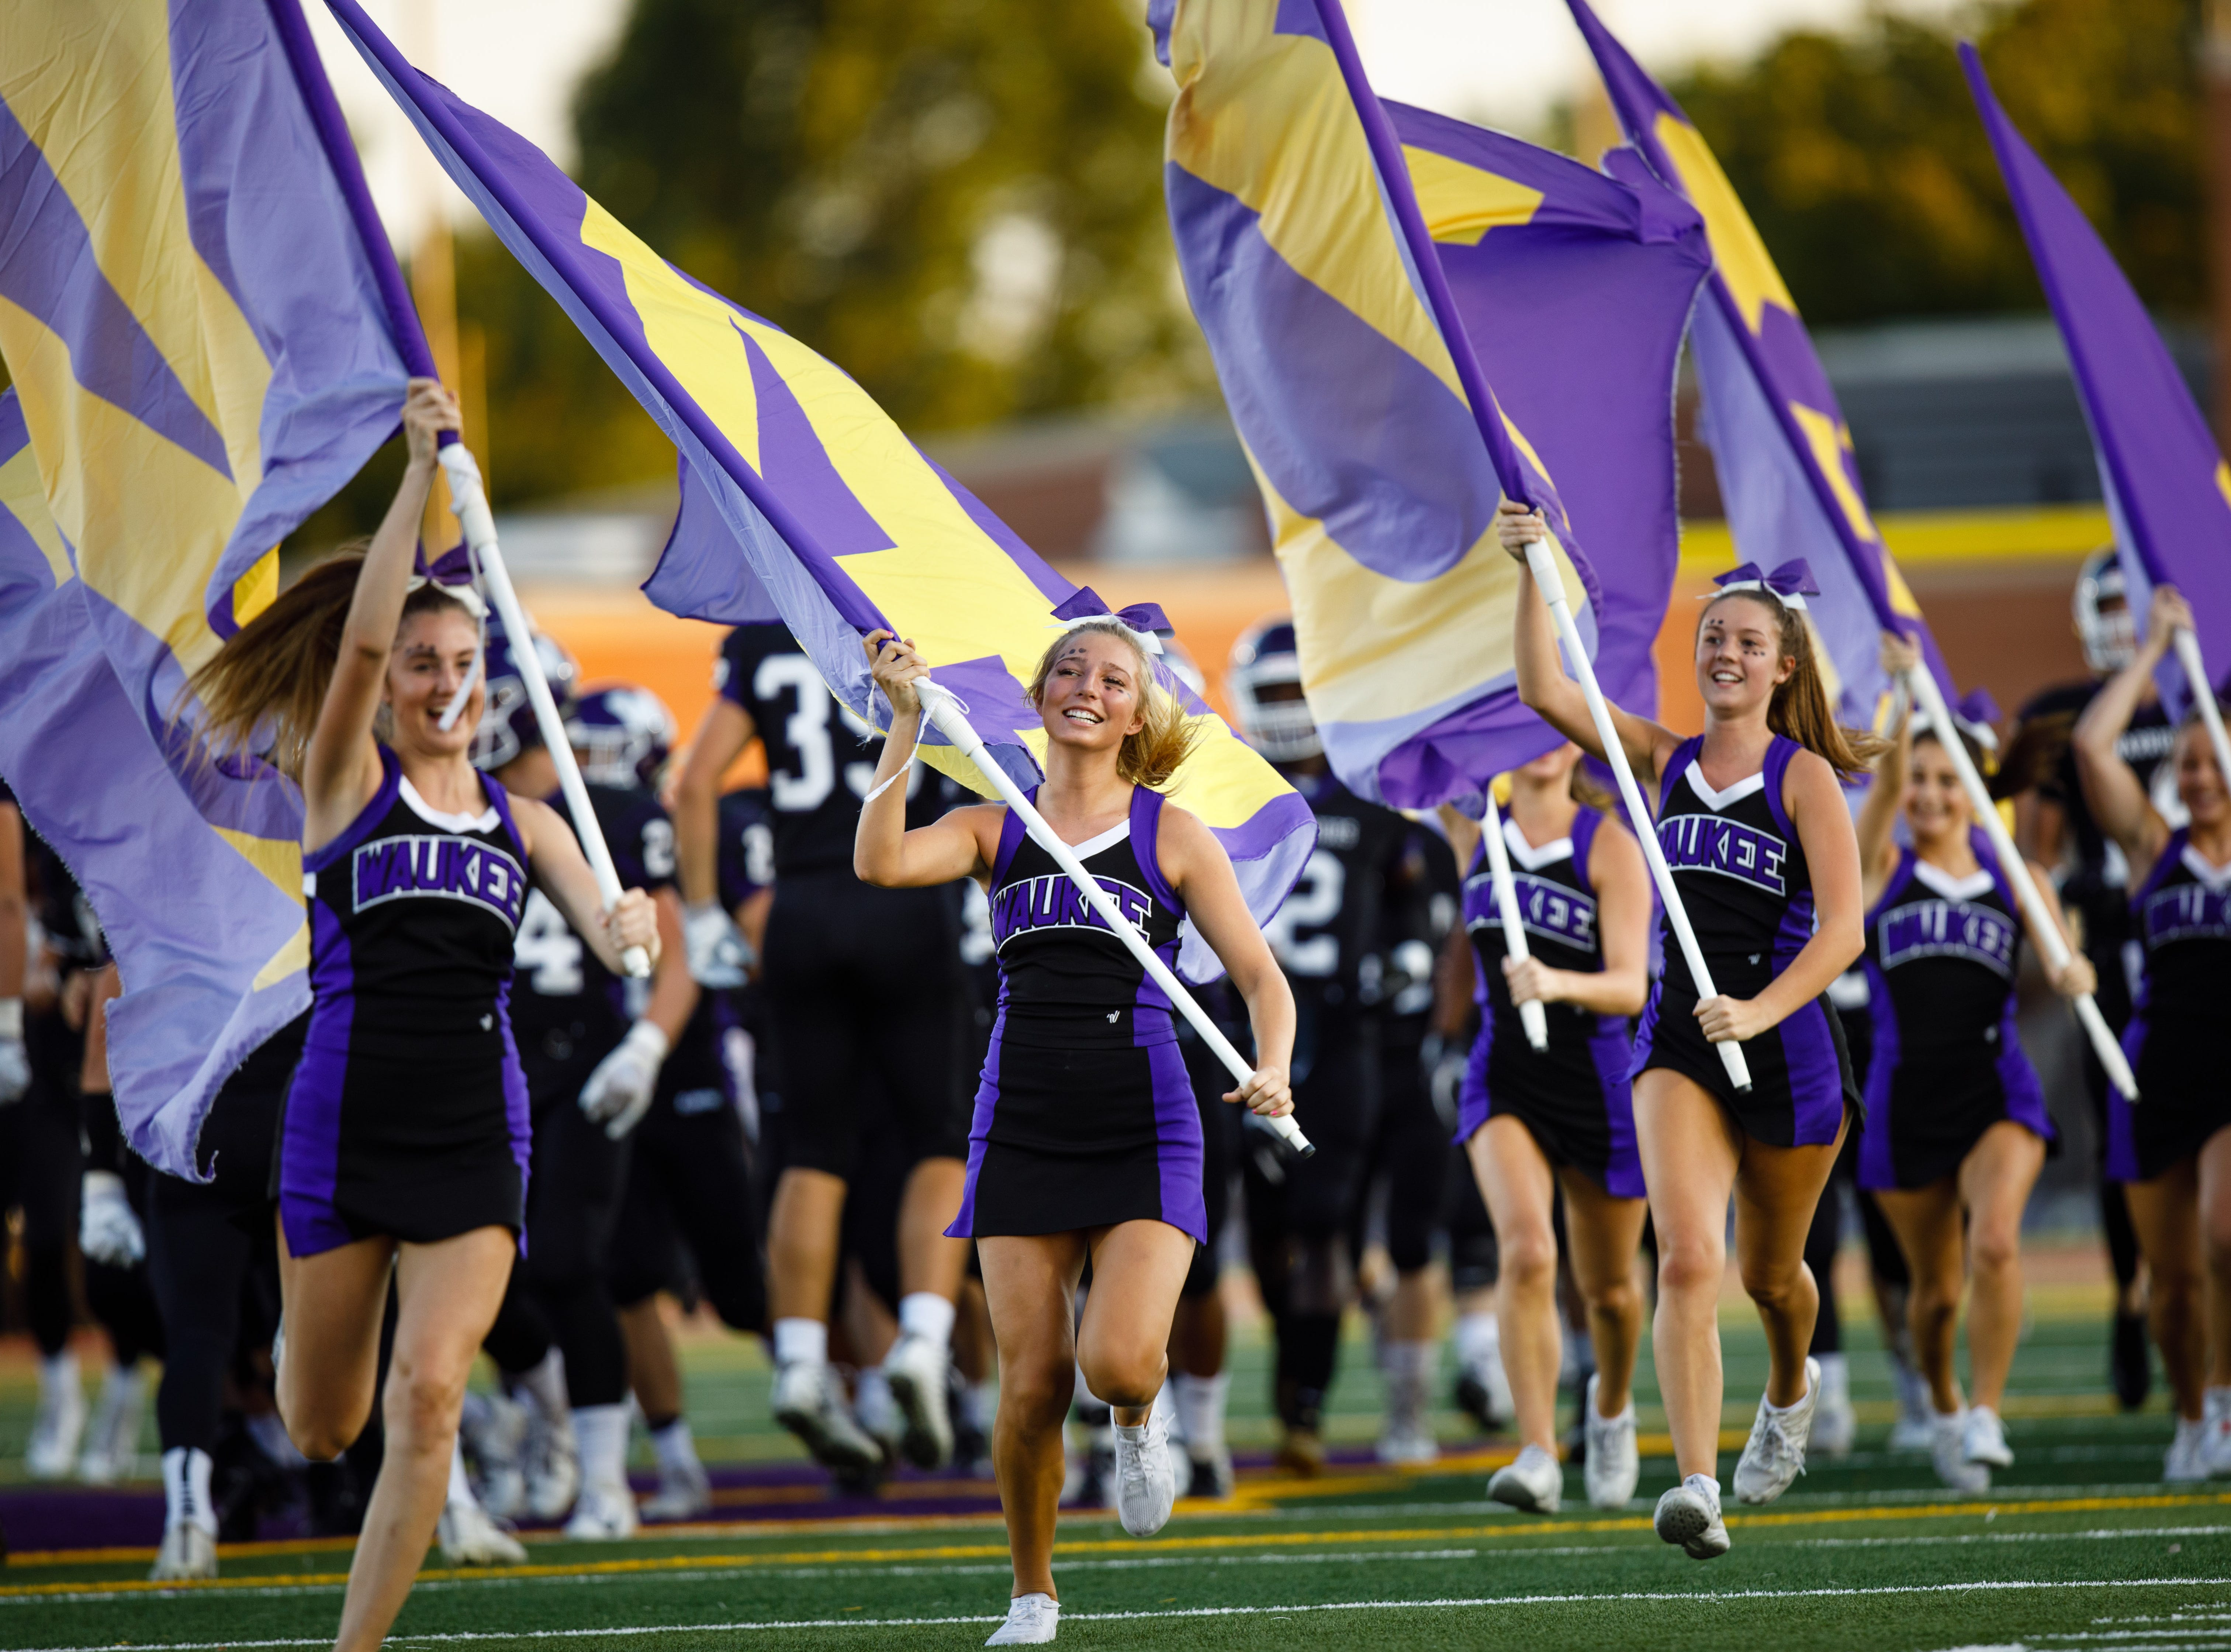 Waukee High School takes the field to play Valley Friday, Sept. 14, 2018, at Waukee Stadium.